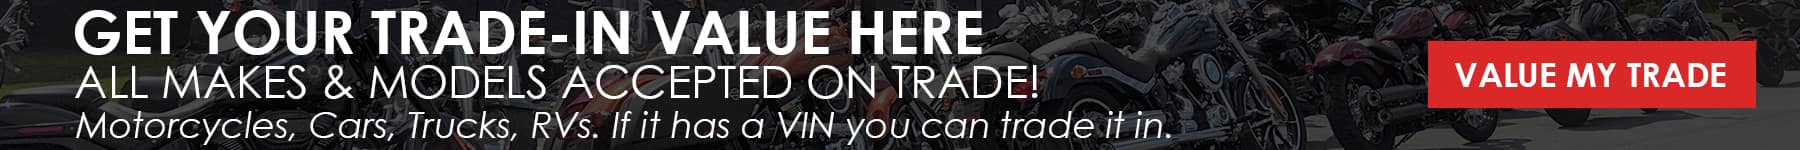 Motorcycle, Truck, Car, RV Trade-In Value